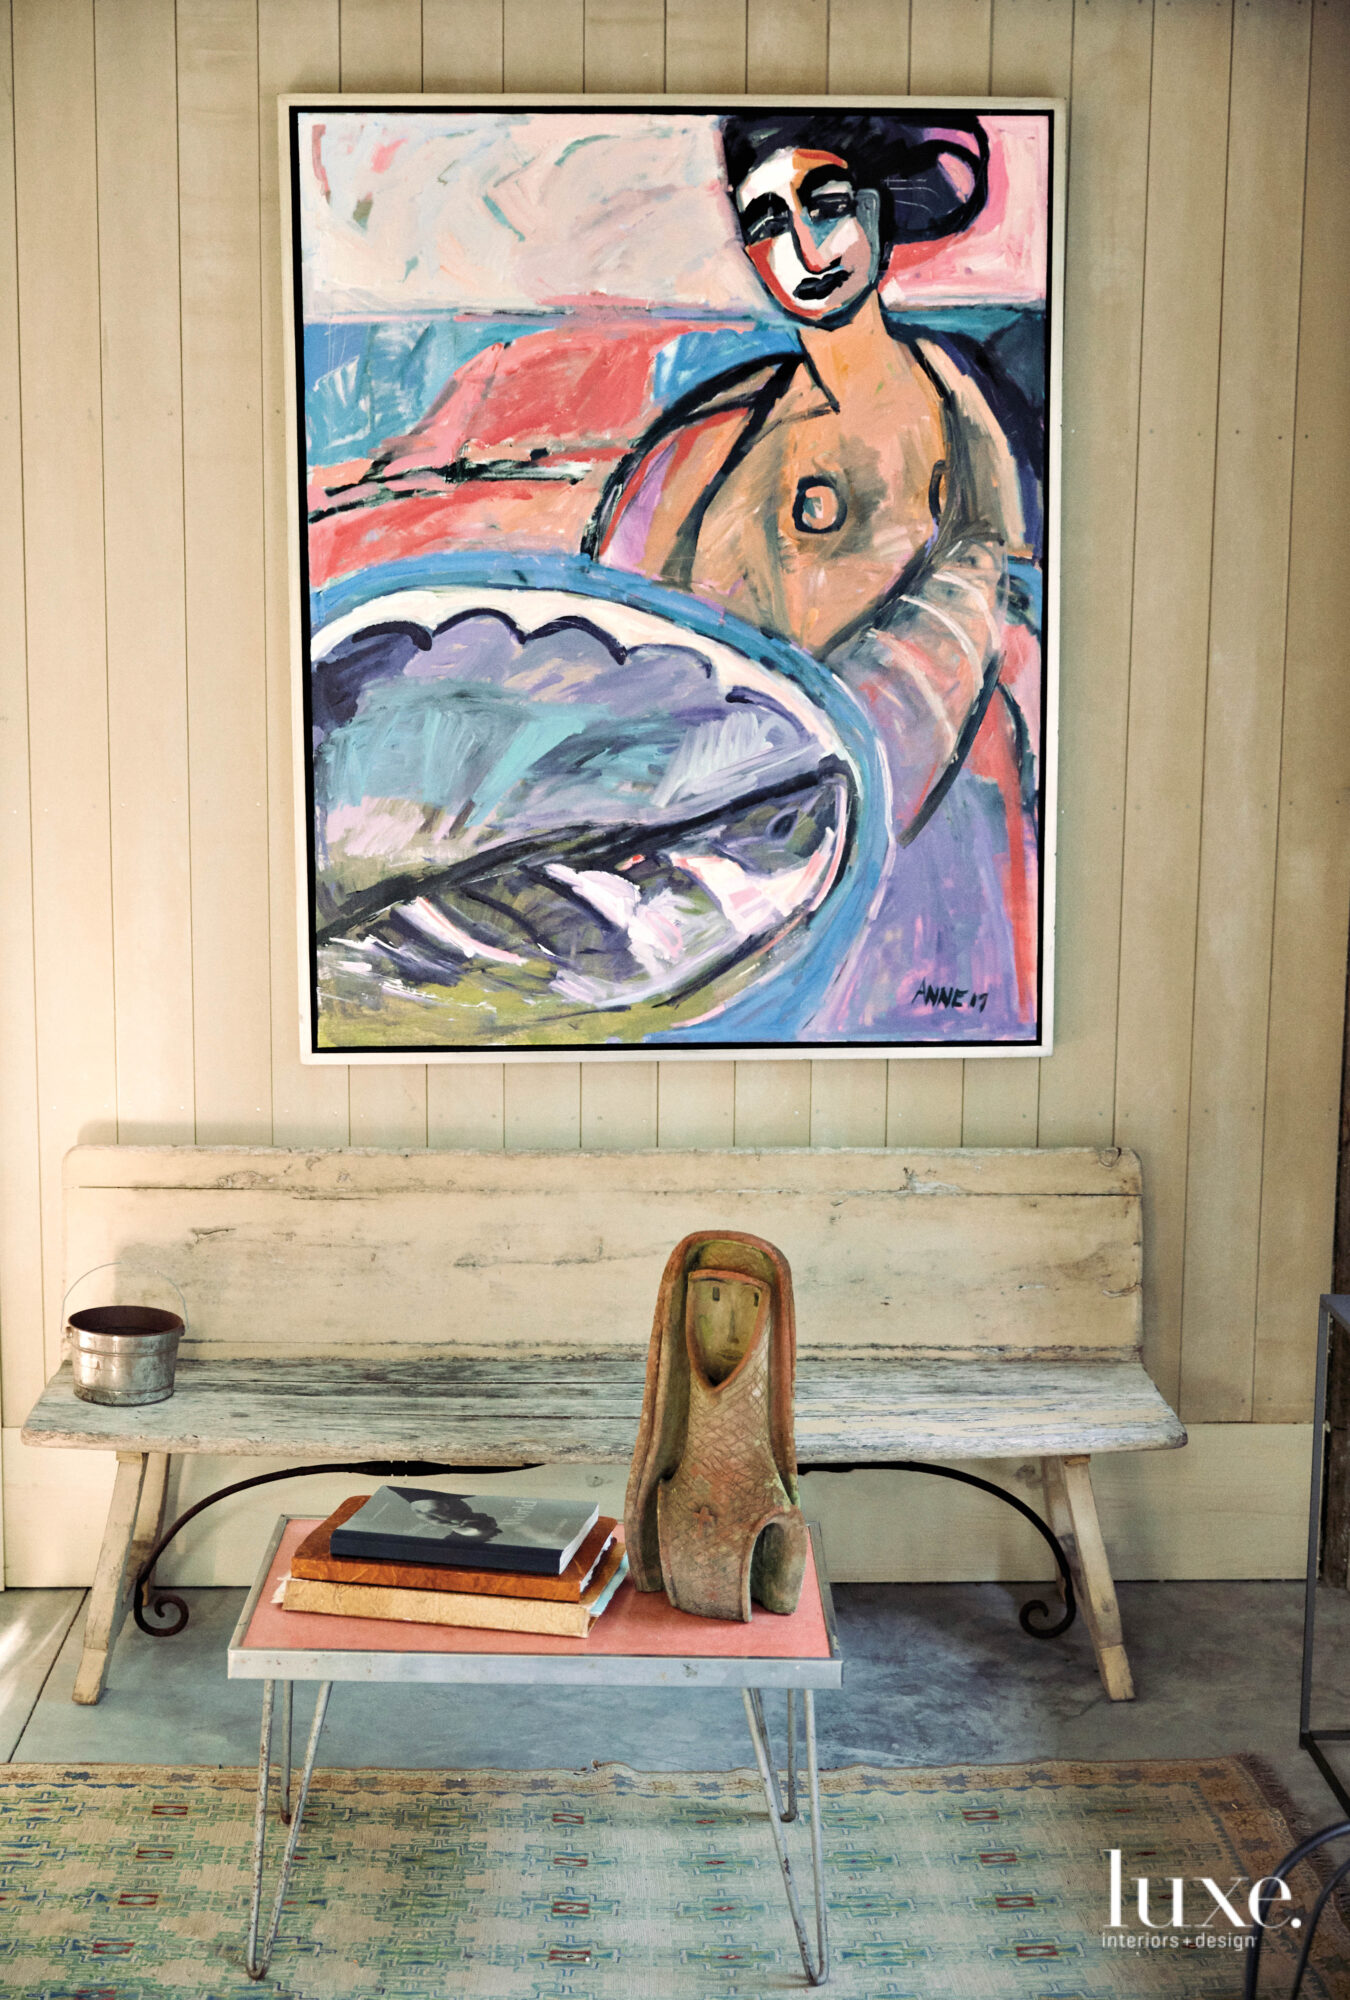 Bench with figurative painting on the paneled wall above it